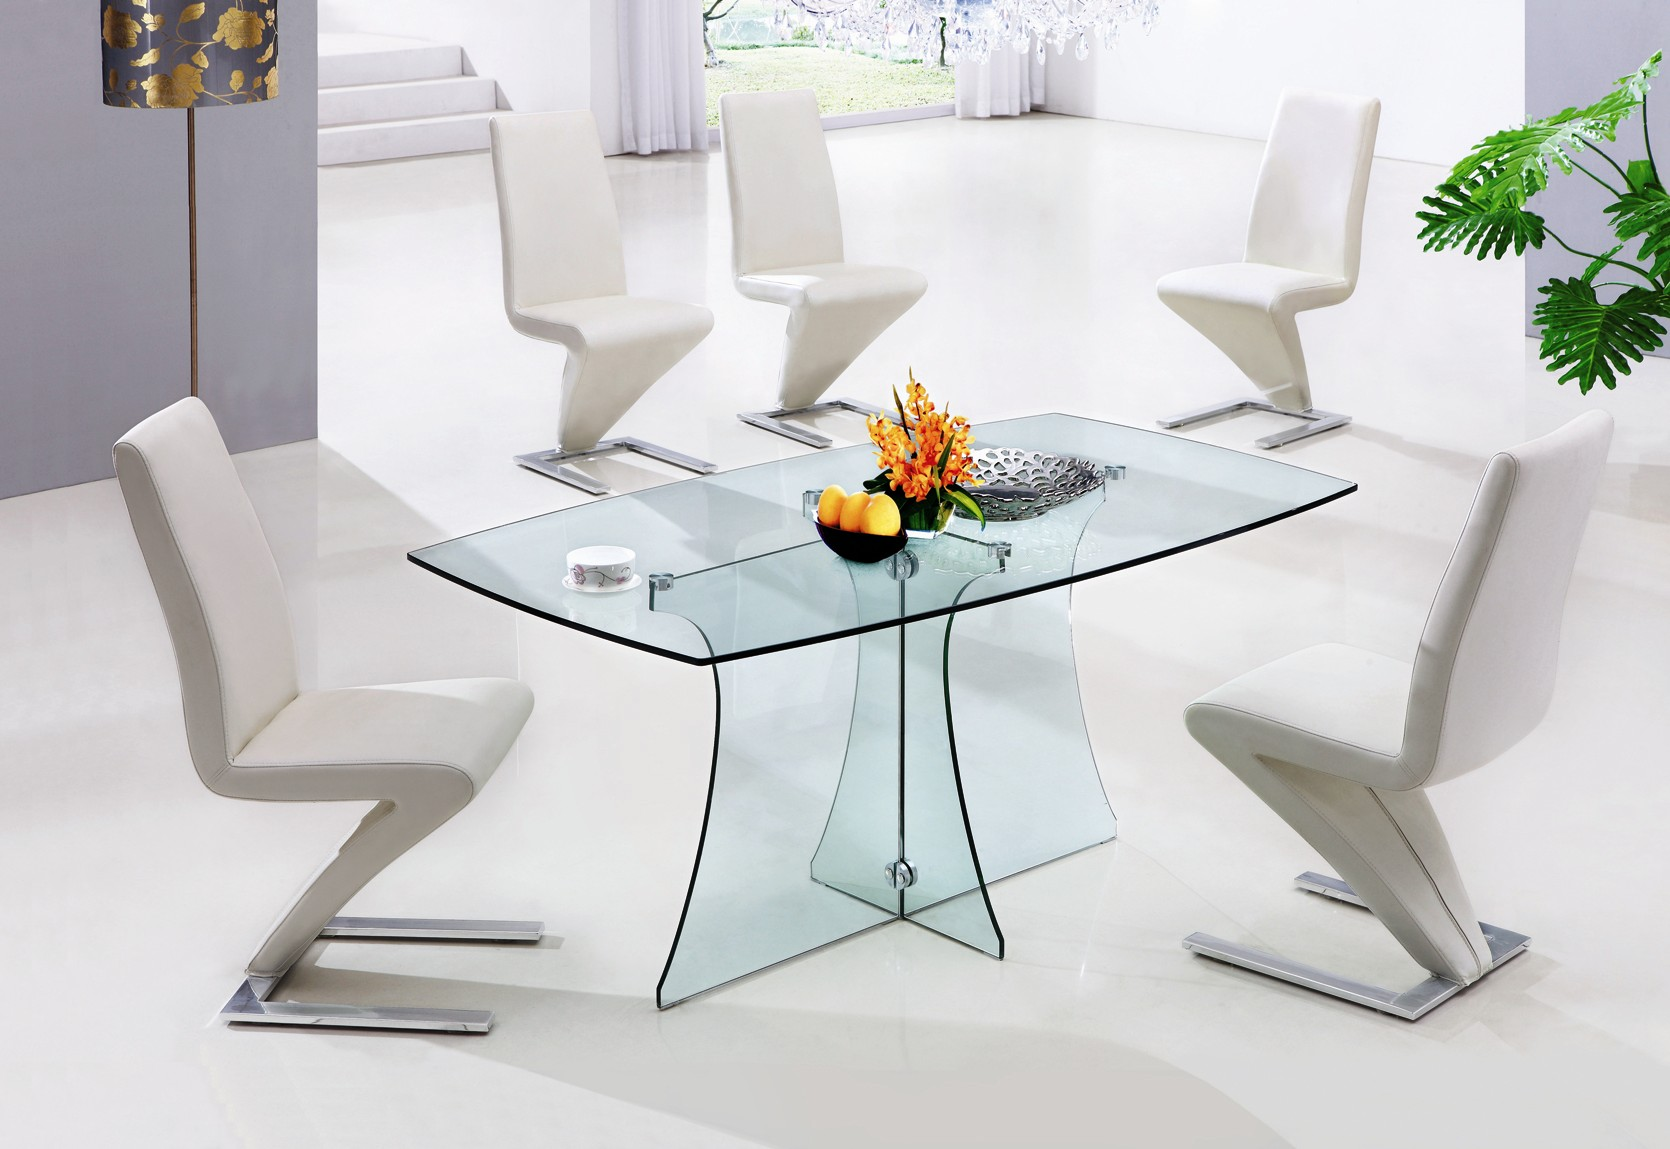 Picture of: Modern glass table and chairs